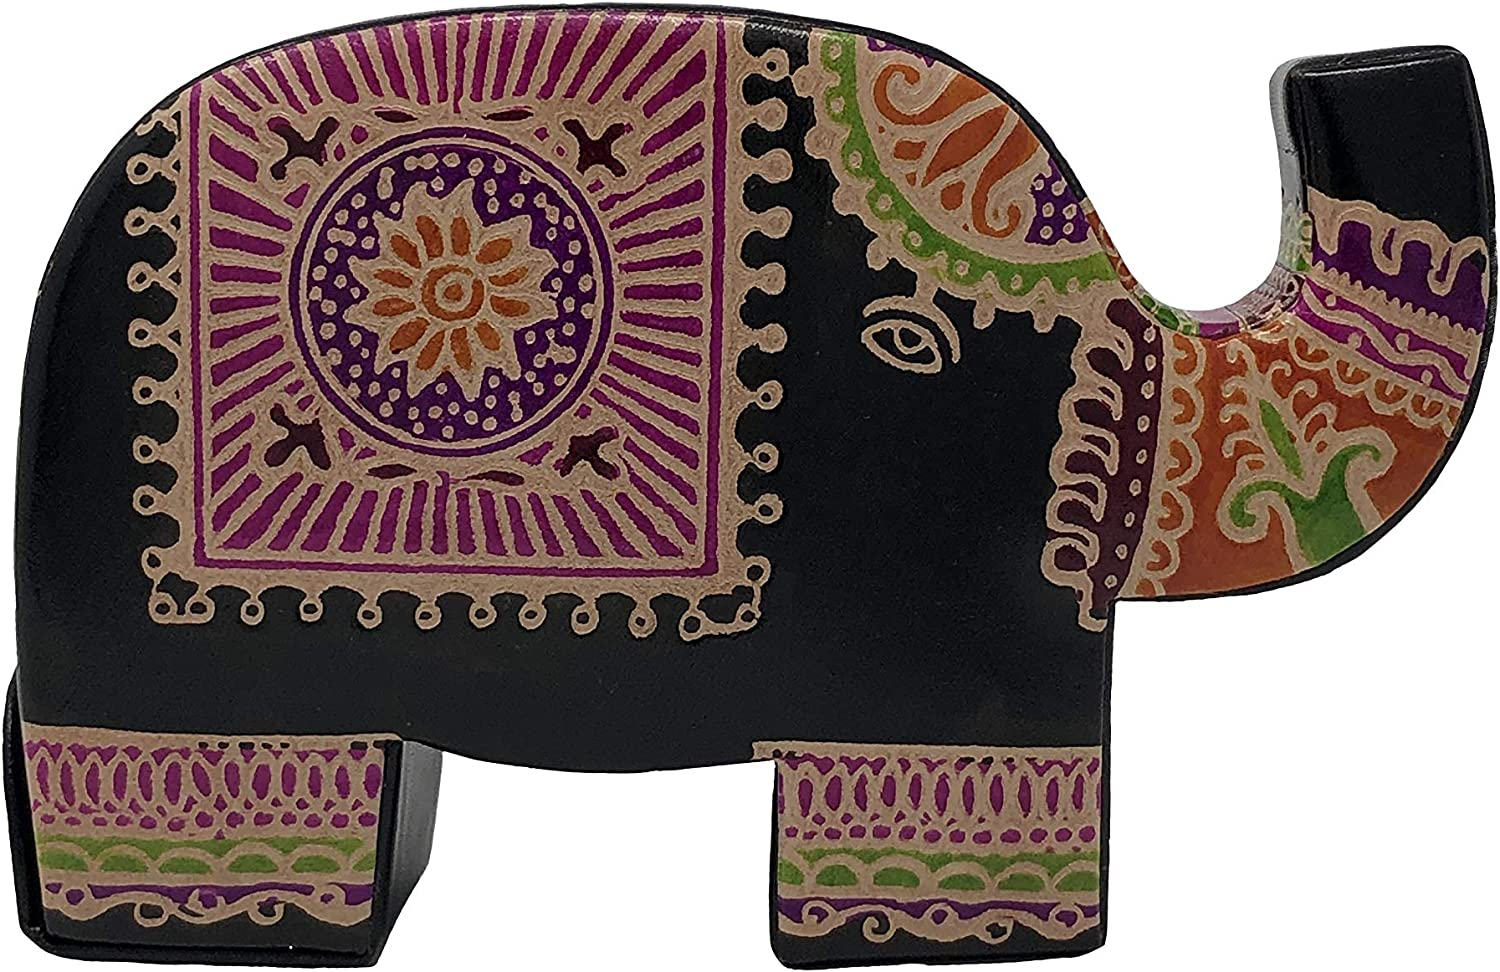 Leather Elephant Bank - Beautiful Indian Design - Decorative Art Bank - Perfect at Home, Office or as a Gift - Hold Coins, Dollars and All The Money ;) by Rich Rose Supply Co.